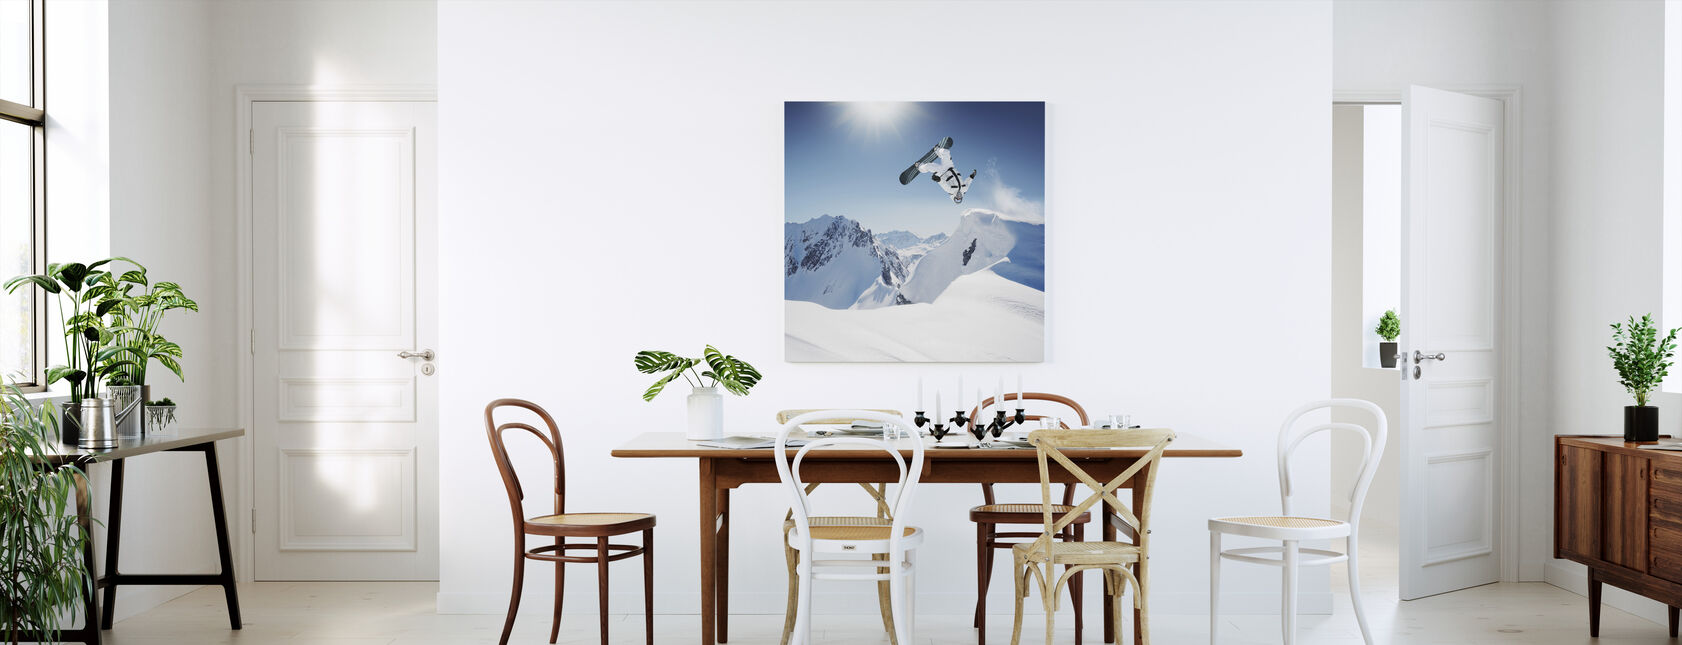 Snowboarder Backflip - Canvas print - Kitchen